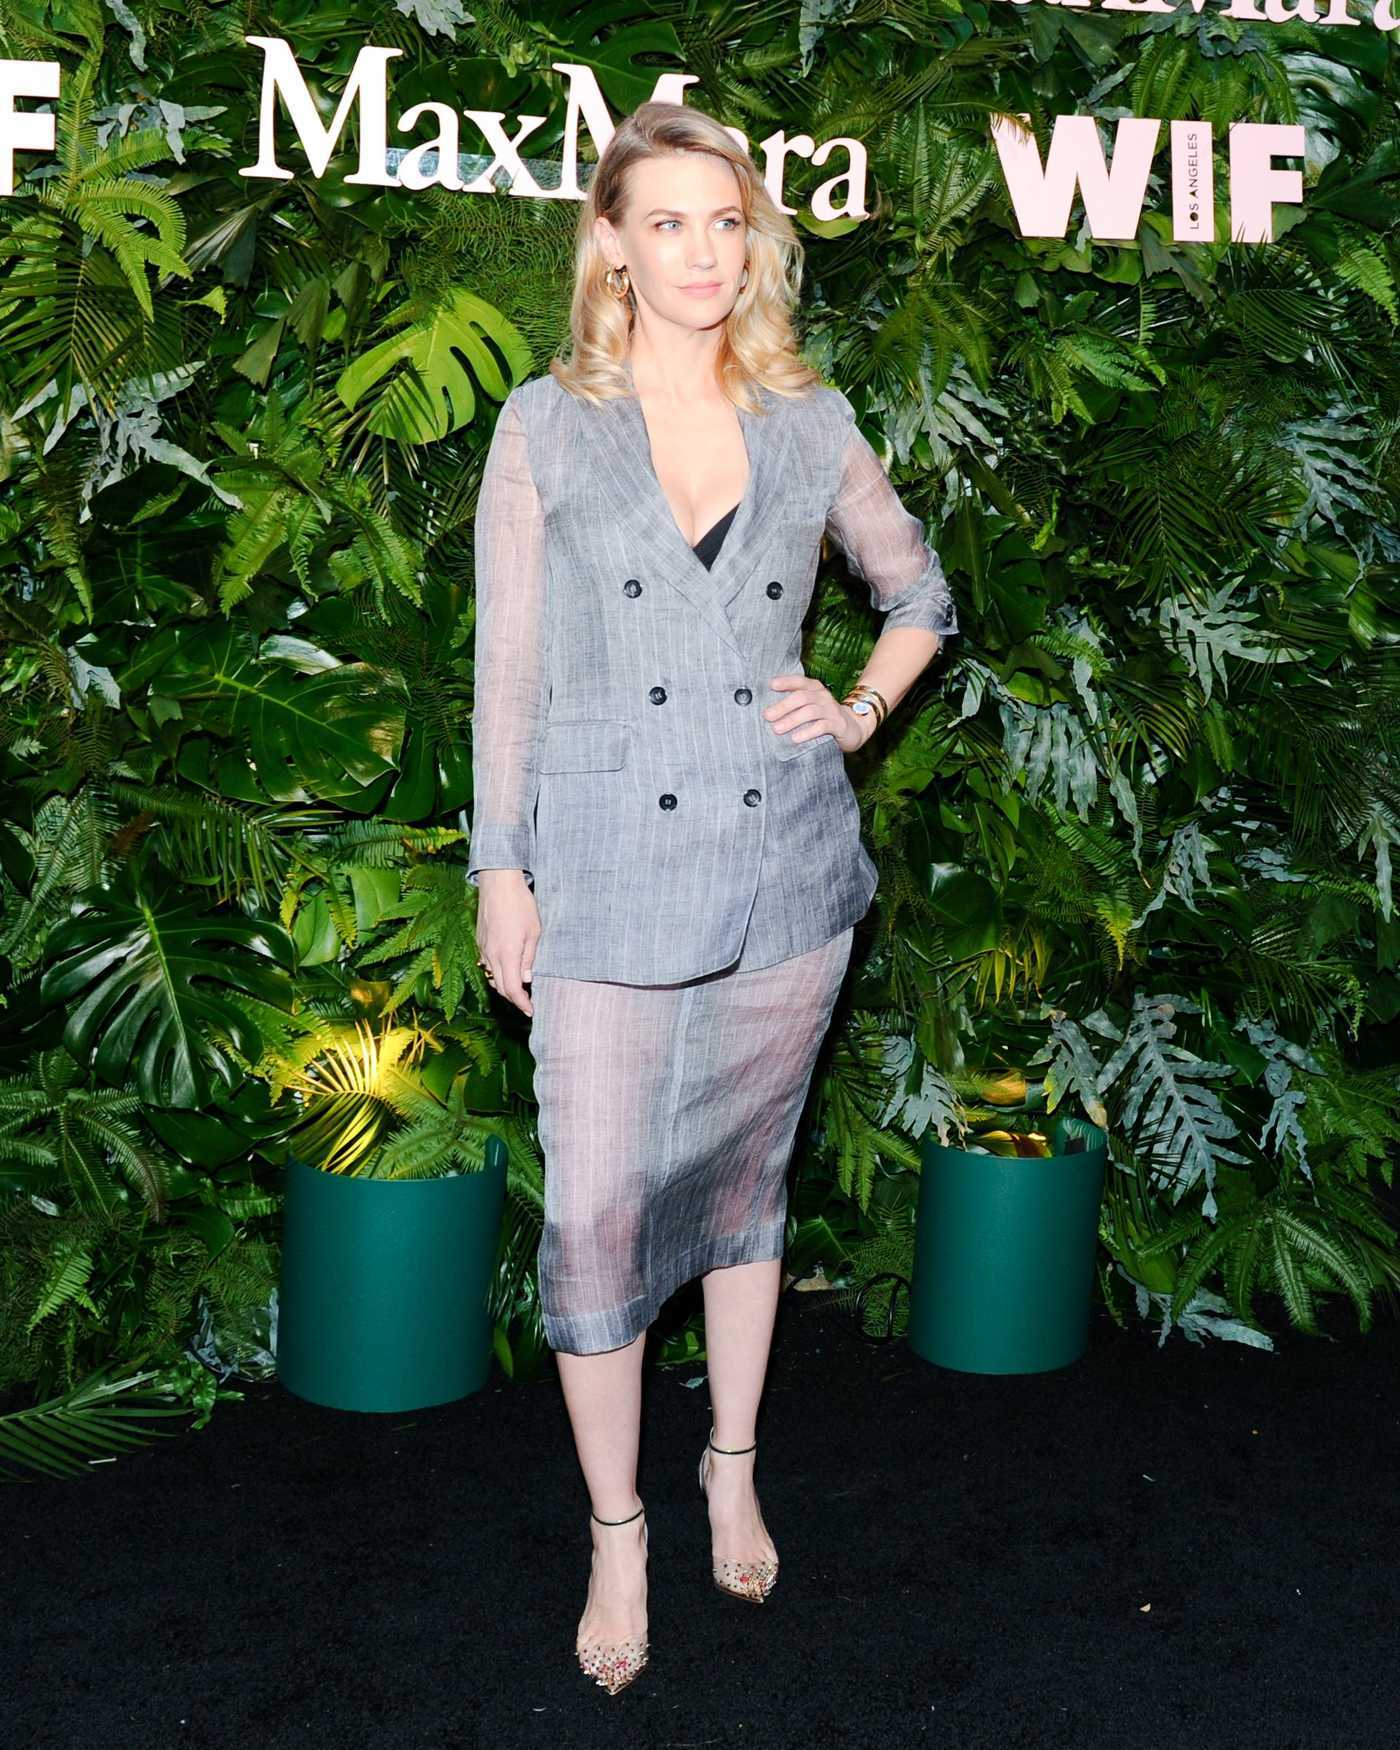 January Jones at 2018 MaxMara WIF Face of the Future in Los Angeles 06/12/2018